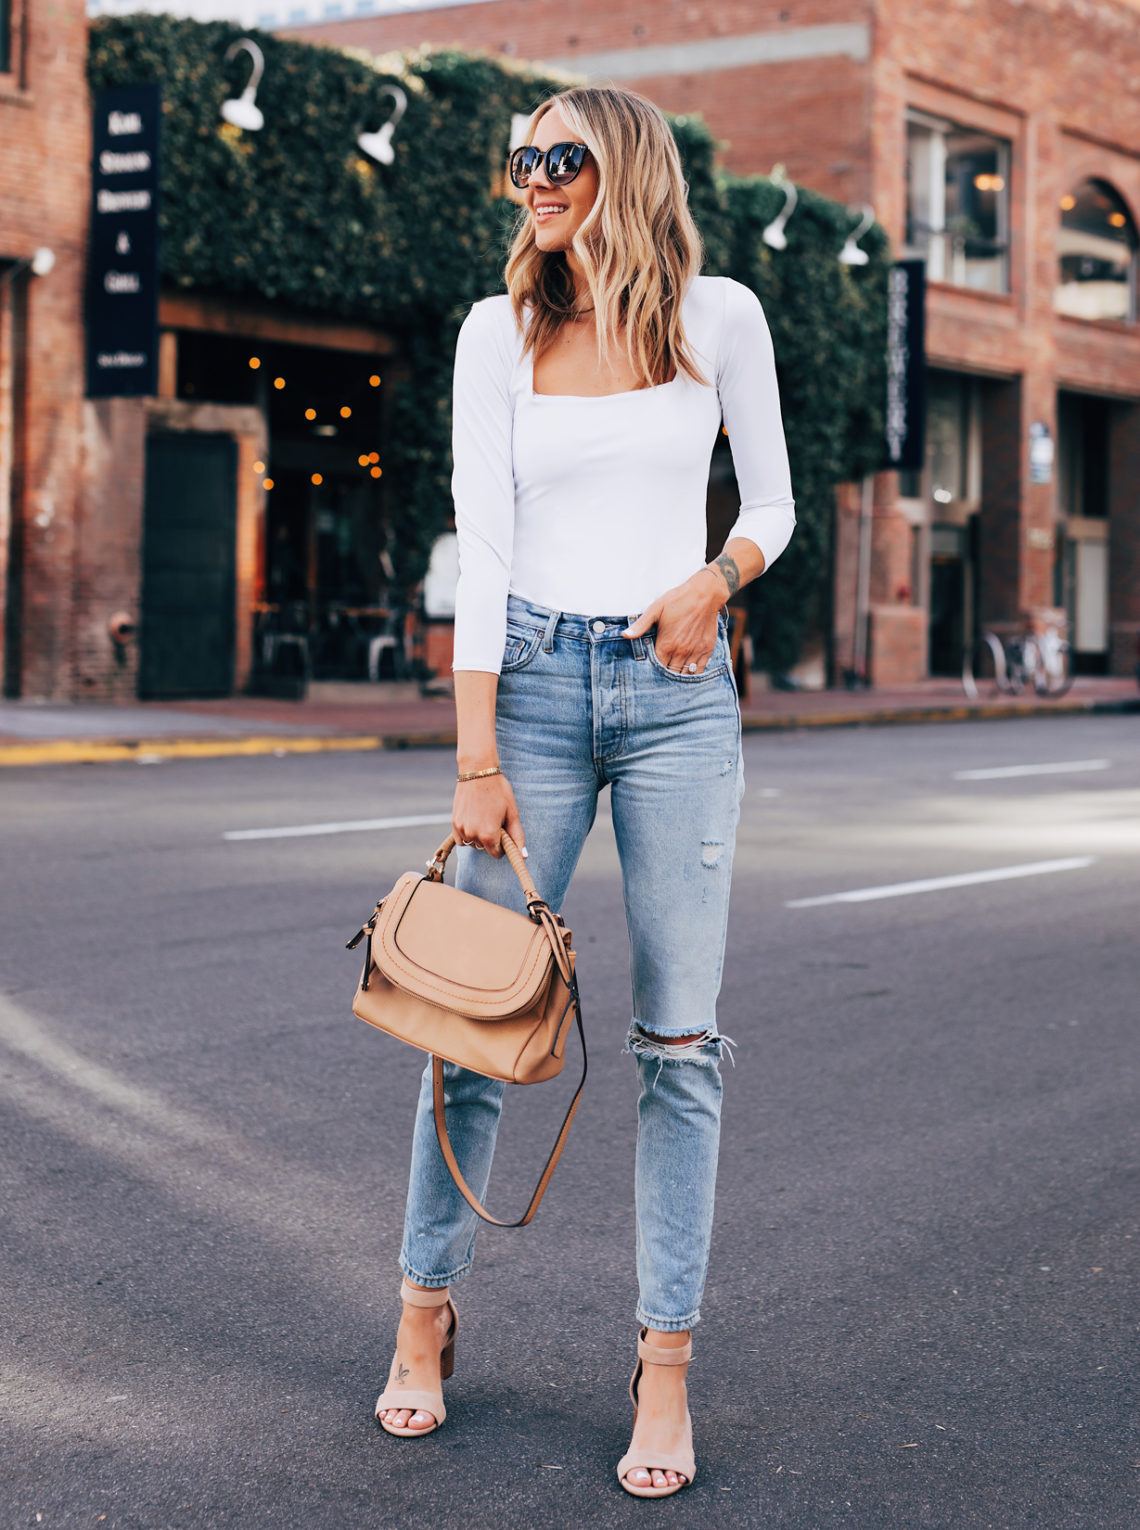 Blonde Woman Wearing Free People White Square Bodysuite Boyish Denim Jeans Sole Society Tan Heeled Sandals Sole Society Tan Crossbody Handbag Featured Image Fashion Jackson San Diego Fashion Blogger Street Style